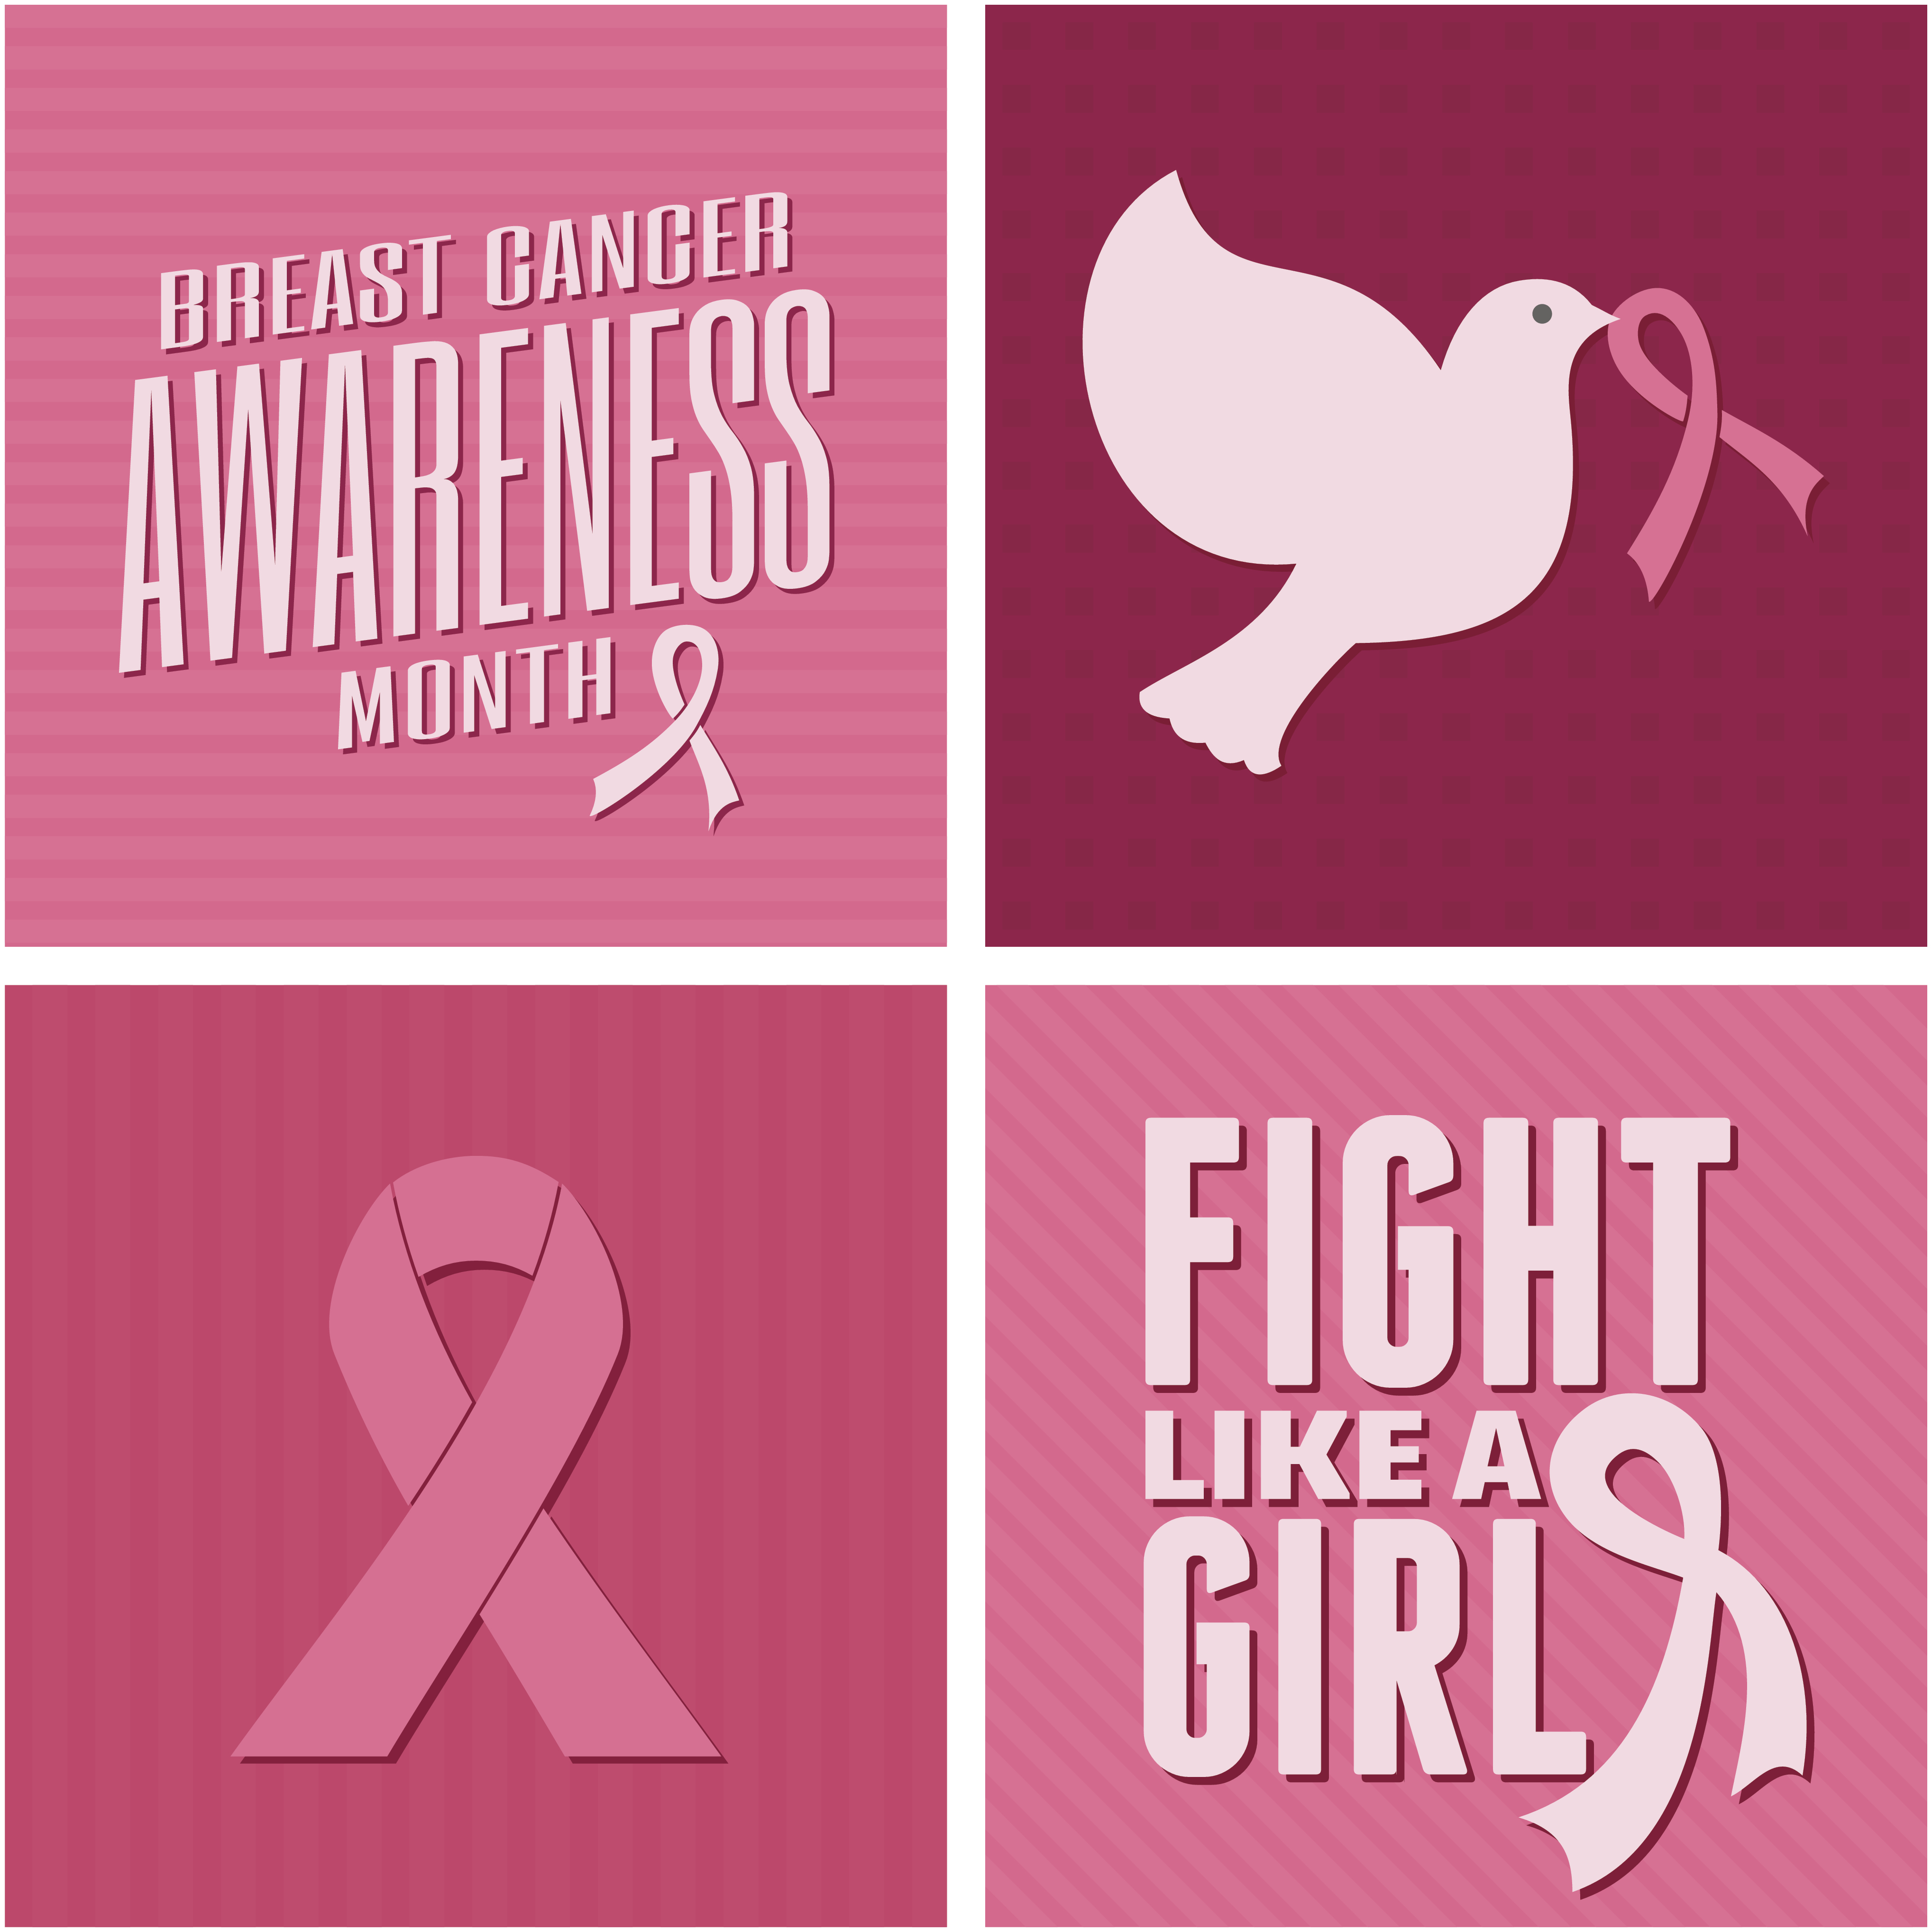 At Misty Clean, we understand that a clean home is a necessity for women and families battling breast cancer.